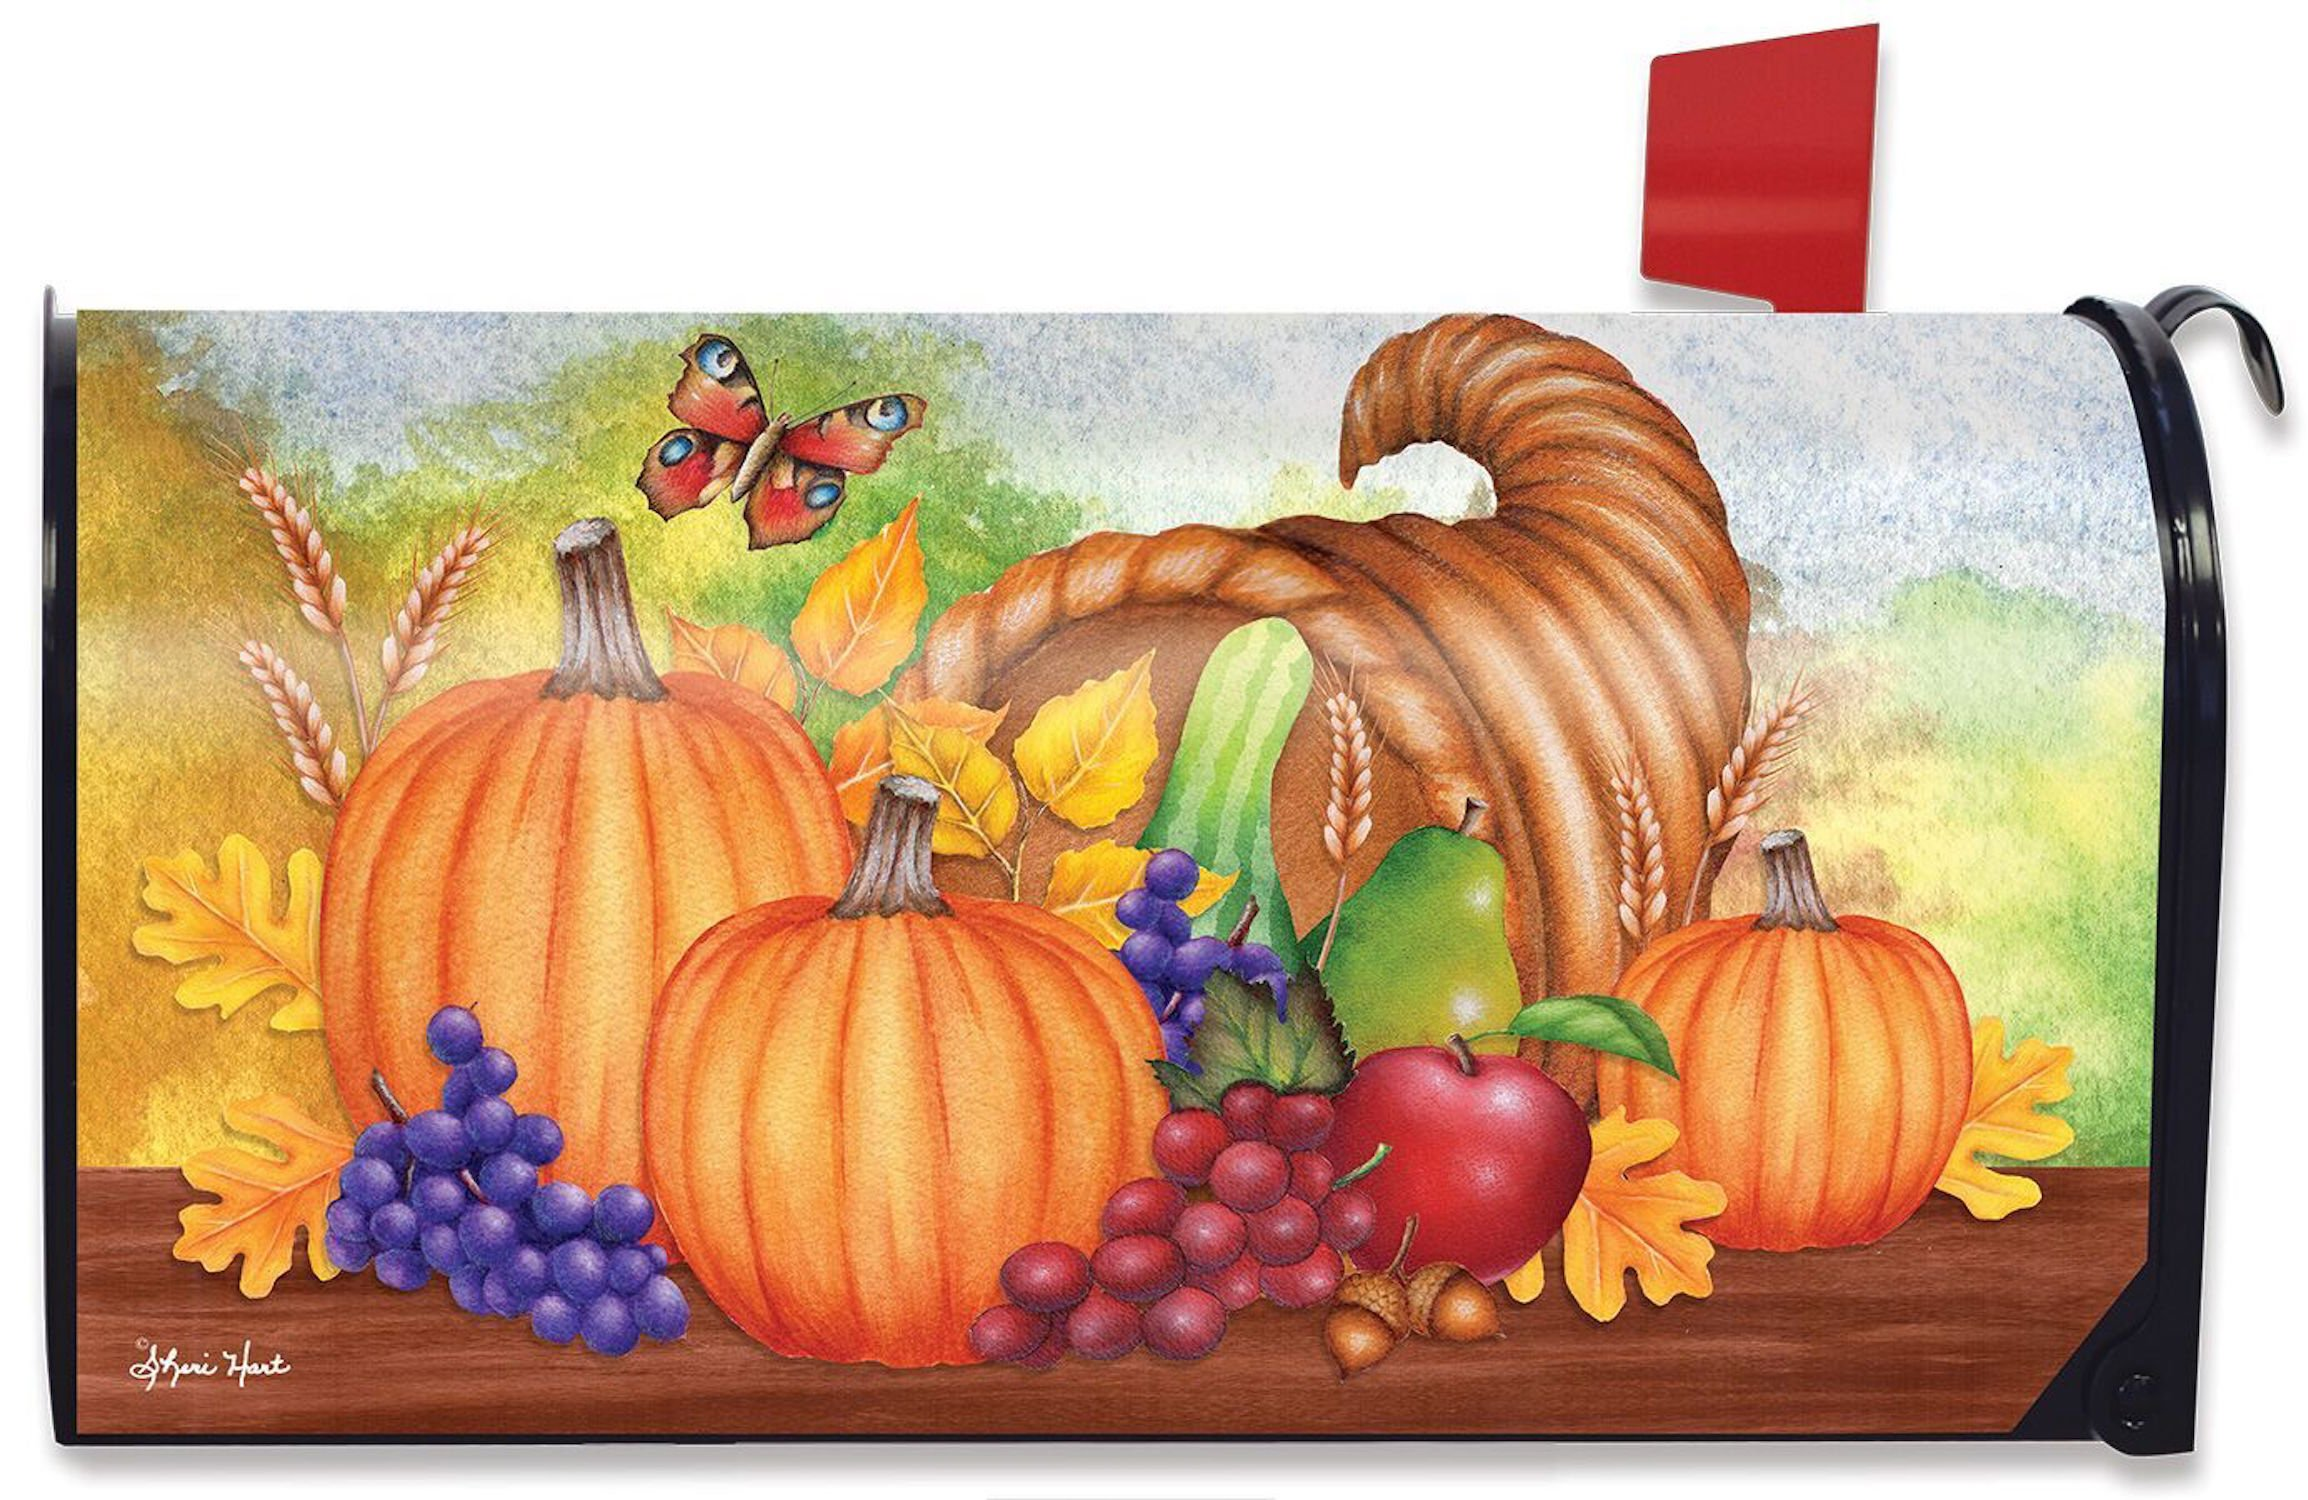 Briarwood Lane Horn Of Plenty Fall Mailbox Cover Thanksgiving Autumn Pumpkins Fruit Standard